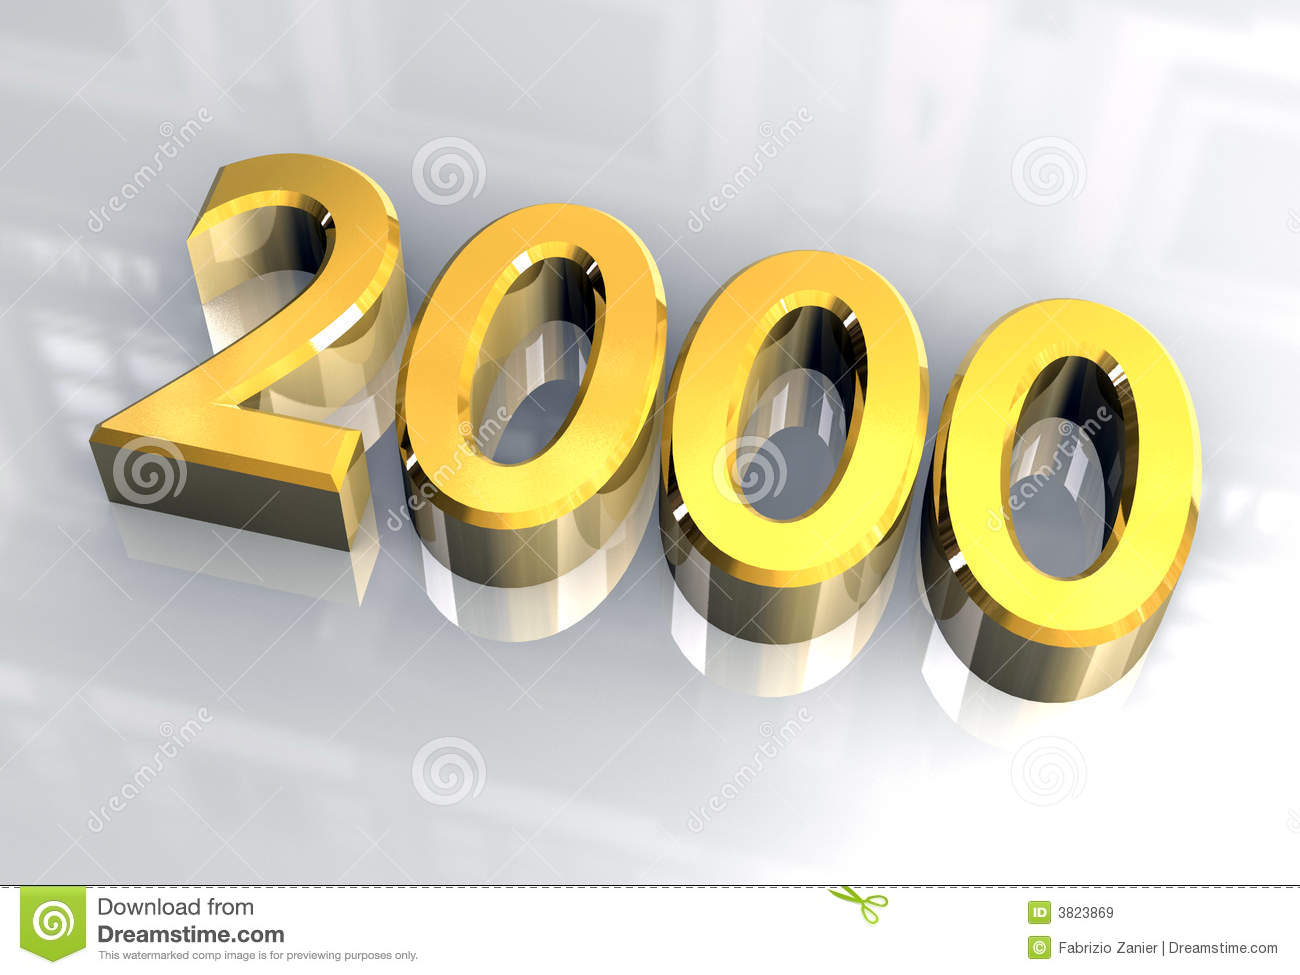 new year 2000 in gold 3d stock illustration